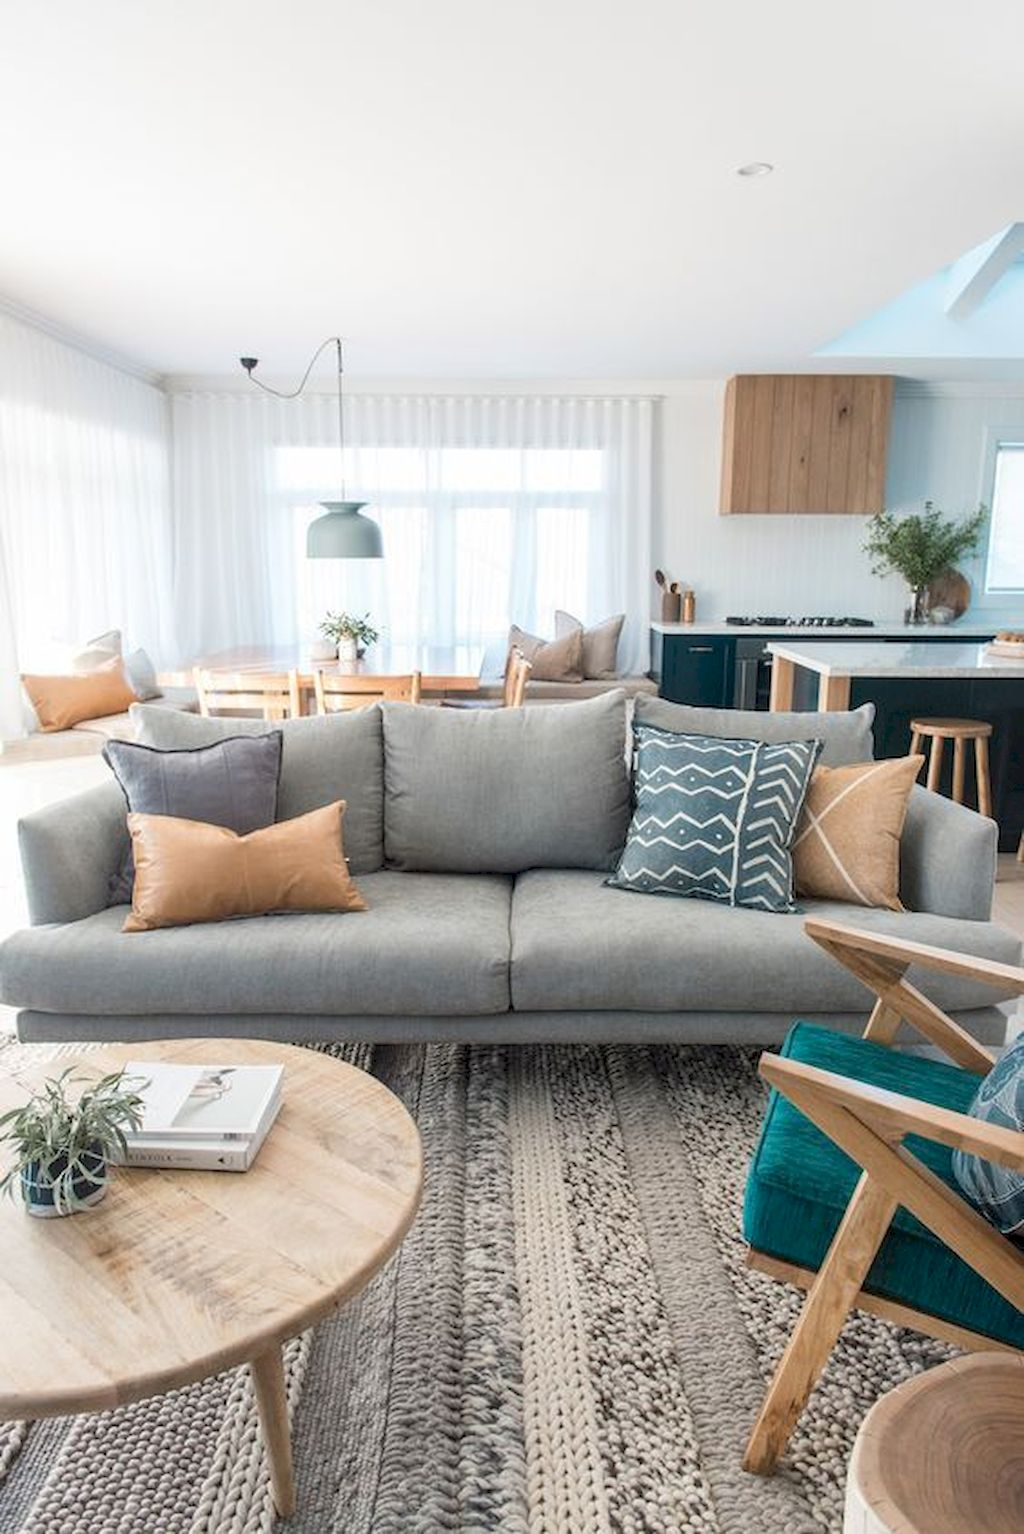 Best Living Room Design with Modern and Cozy Appeal Part 1